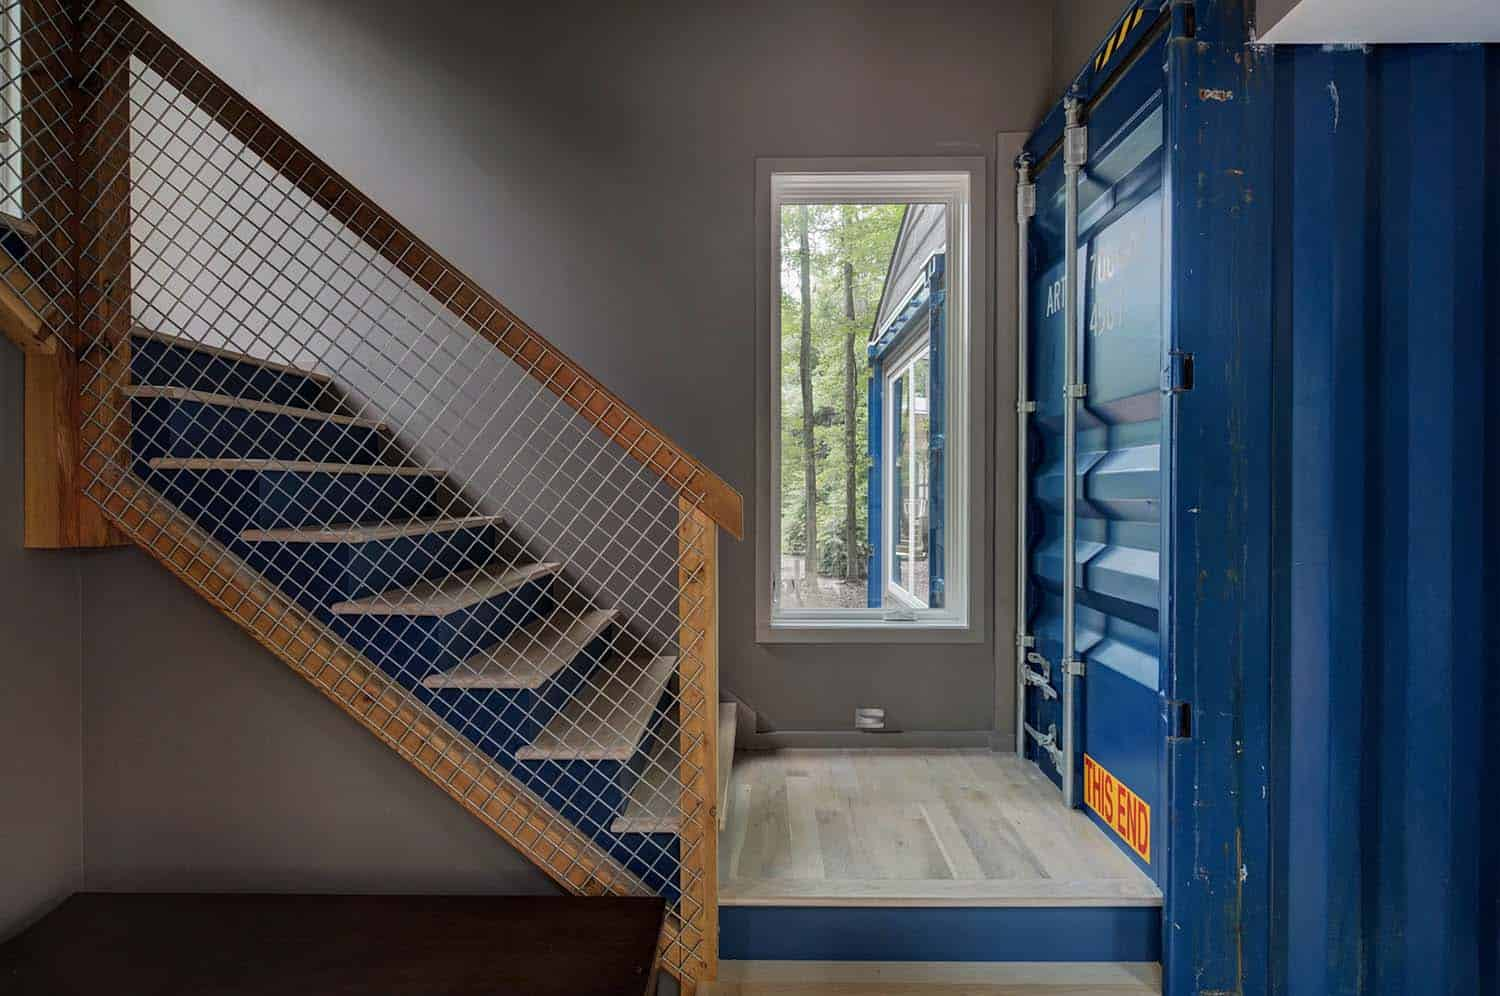 Shipping Container Hybrid Home-Fredman Design Group-09-1 Kindesign